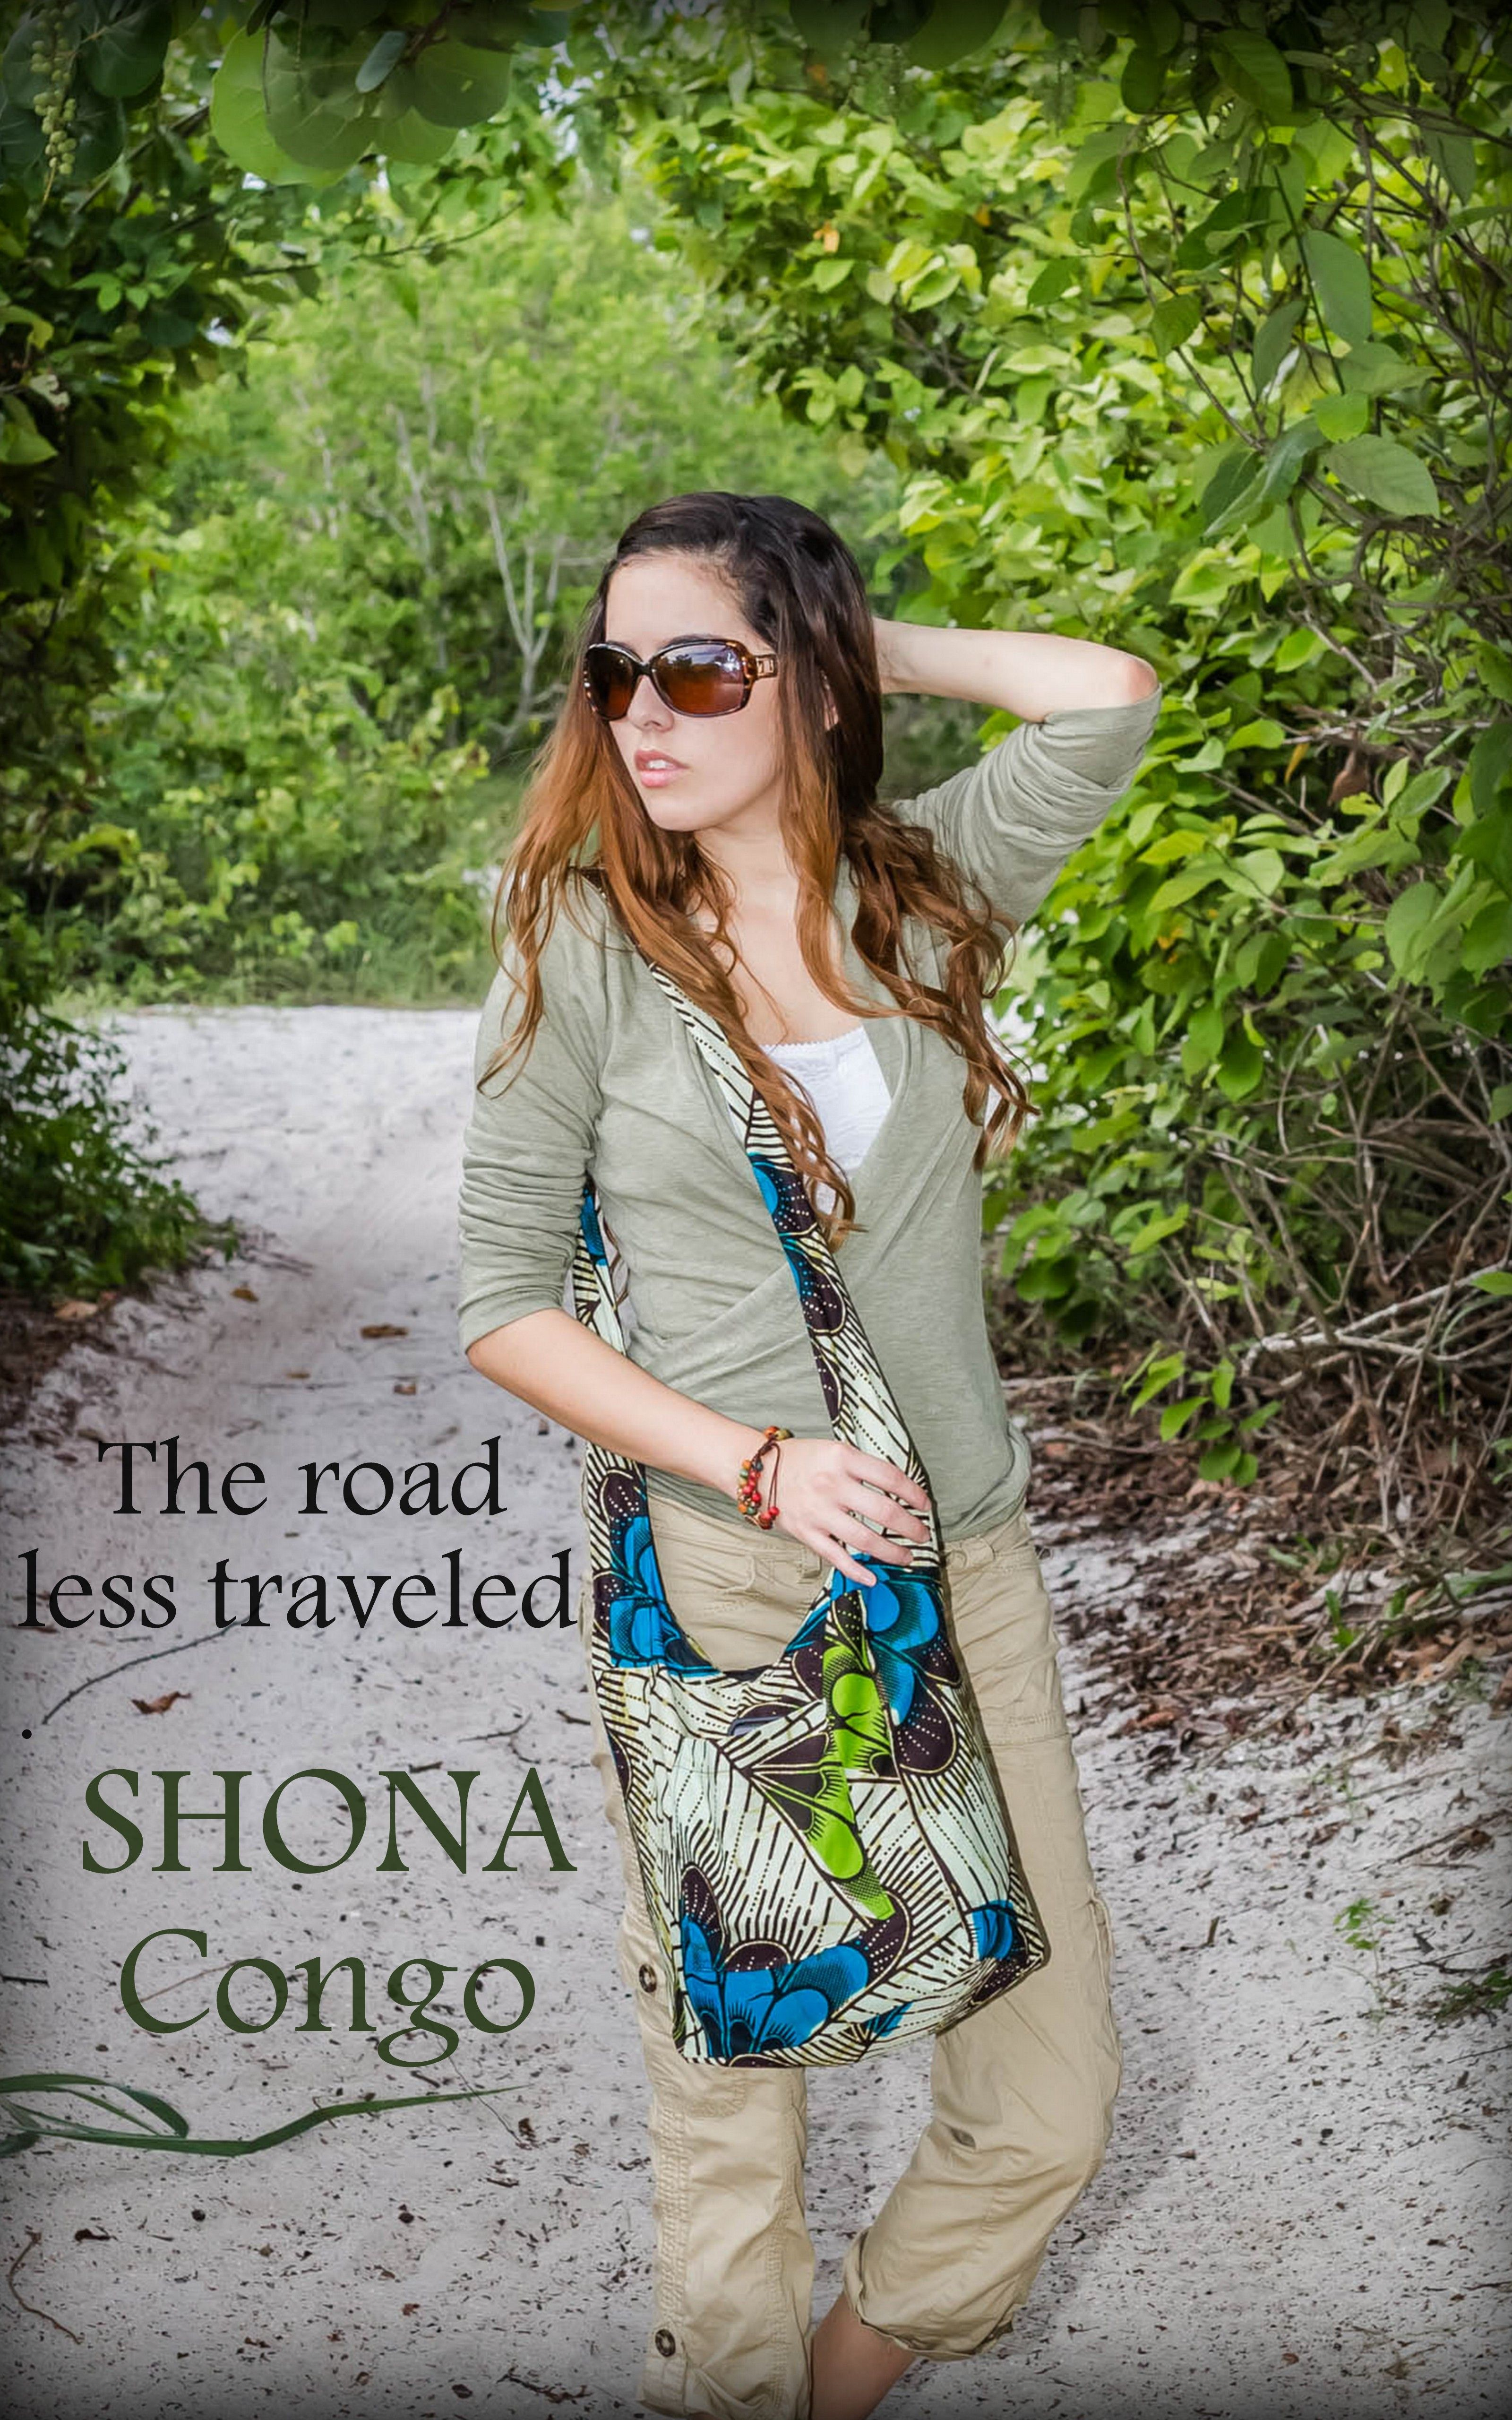 The road less traveled depends on what we carry with us.  Carry something real.  www.shonacongo.com